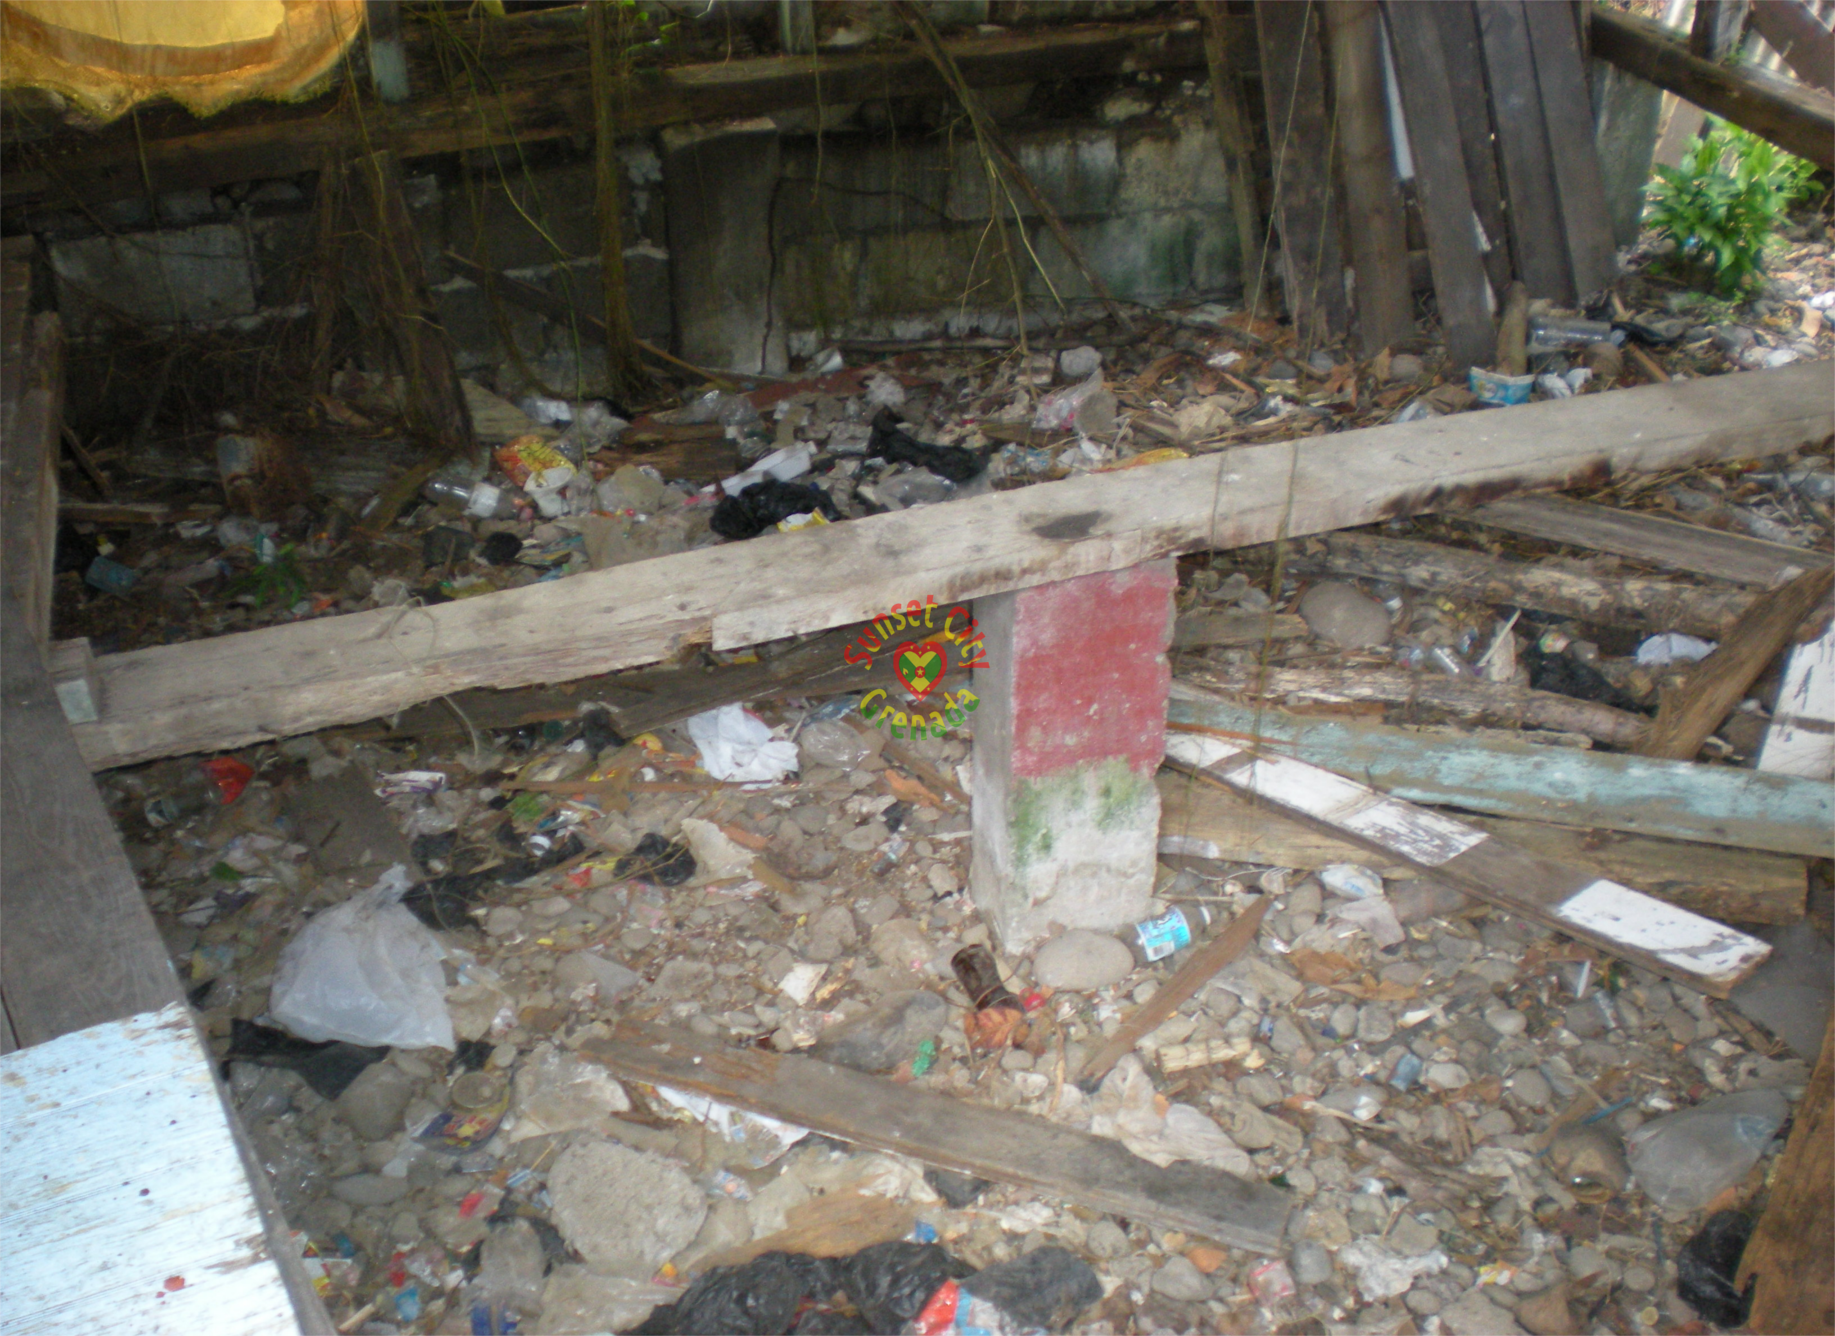 Garbage dumped in abandon building to the right of St. David's street